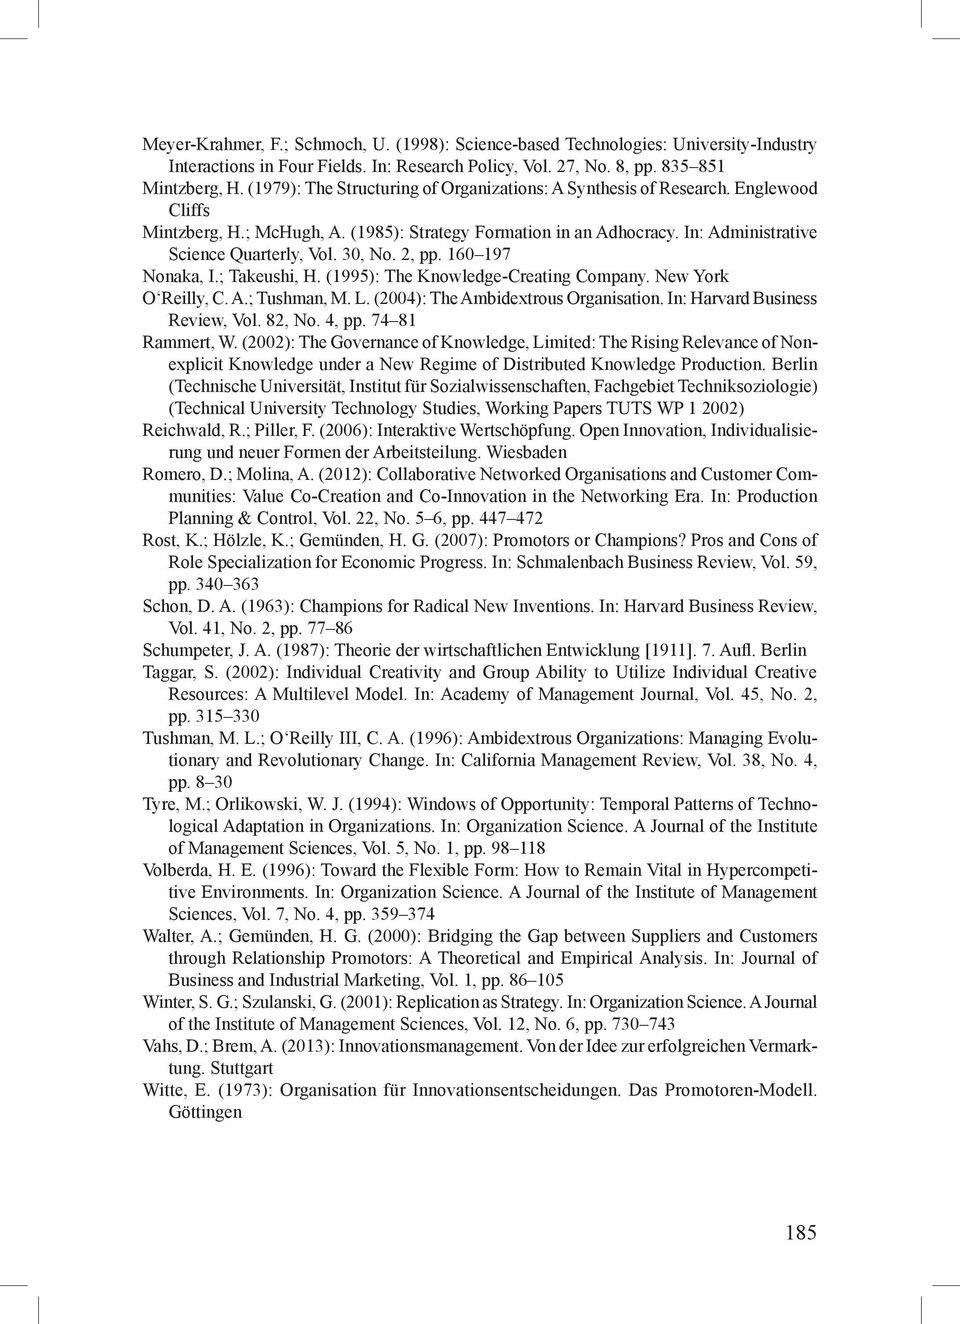 30, No. 2, pp. 160 197 Nonaka, I.; Takeushi, H. (1995): The Knowledge-Creating Company. New York O Reilly, C. A.; Tushman, M. L. (2004): The Ambidextrous Organisation.